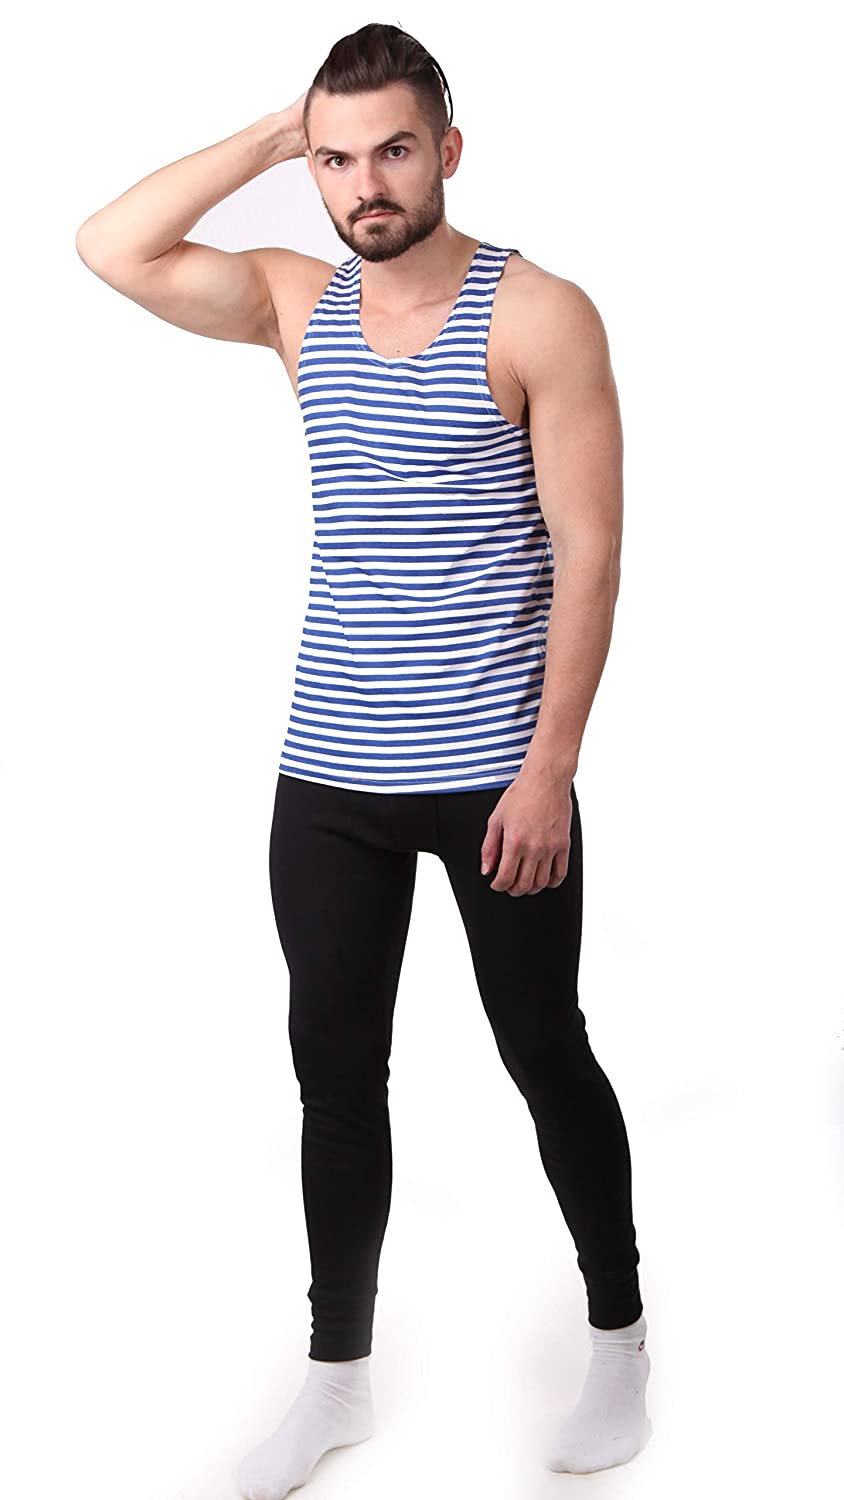 74cebf91697dc7 Svitanak Russian USSR Soviet Military Army T-Shirt Tank TOP Vest Blue White  Sailor s Striped Vest at Amazon Men s Clothing store